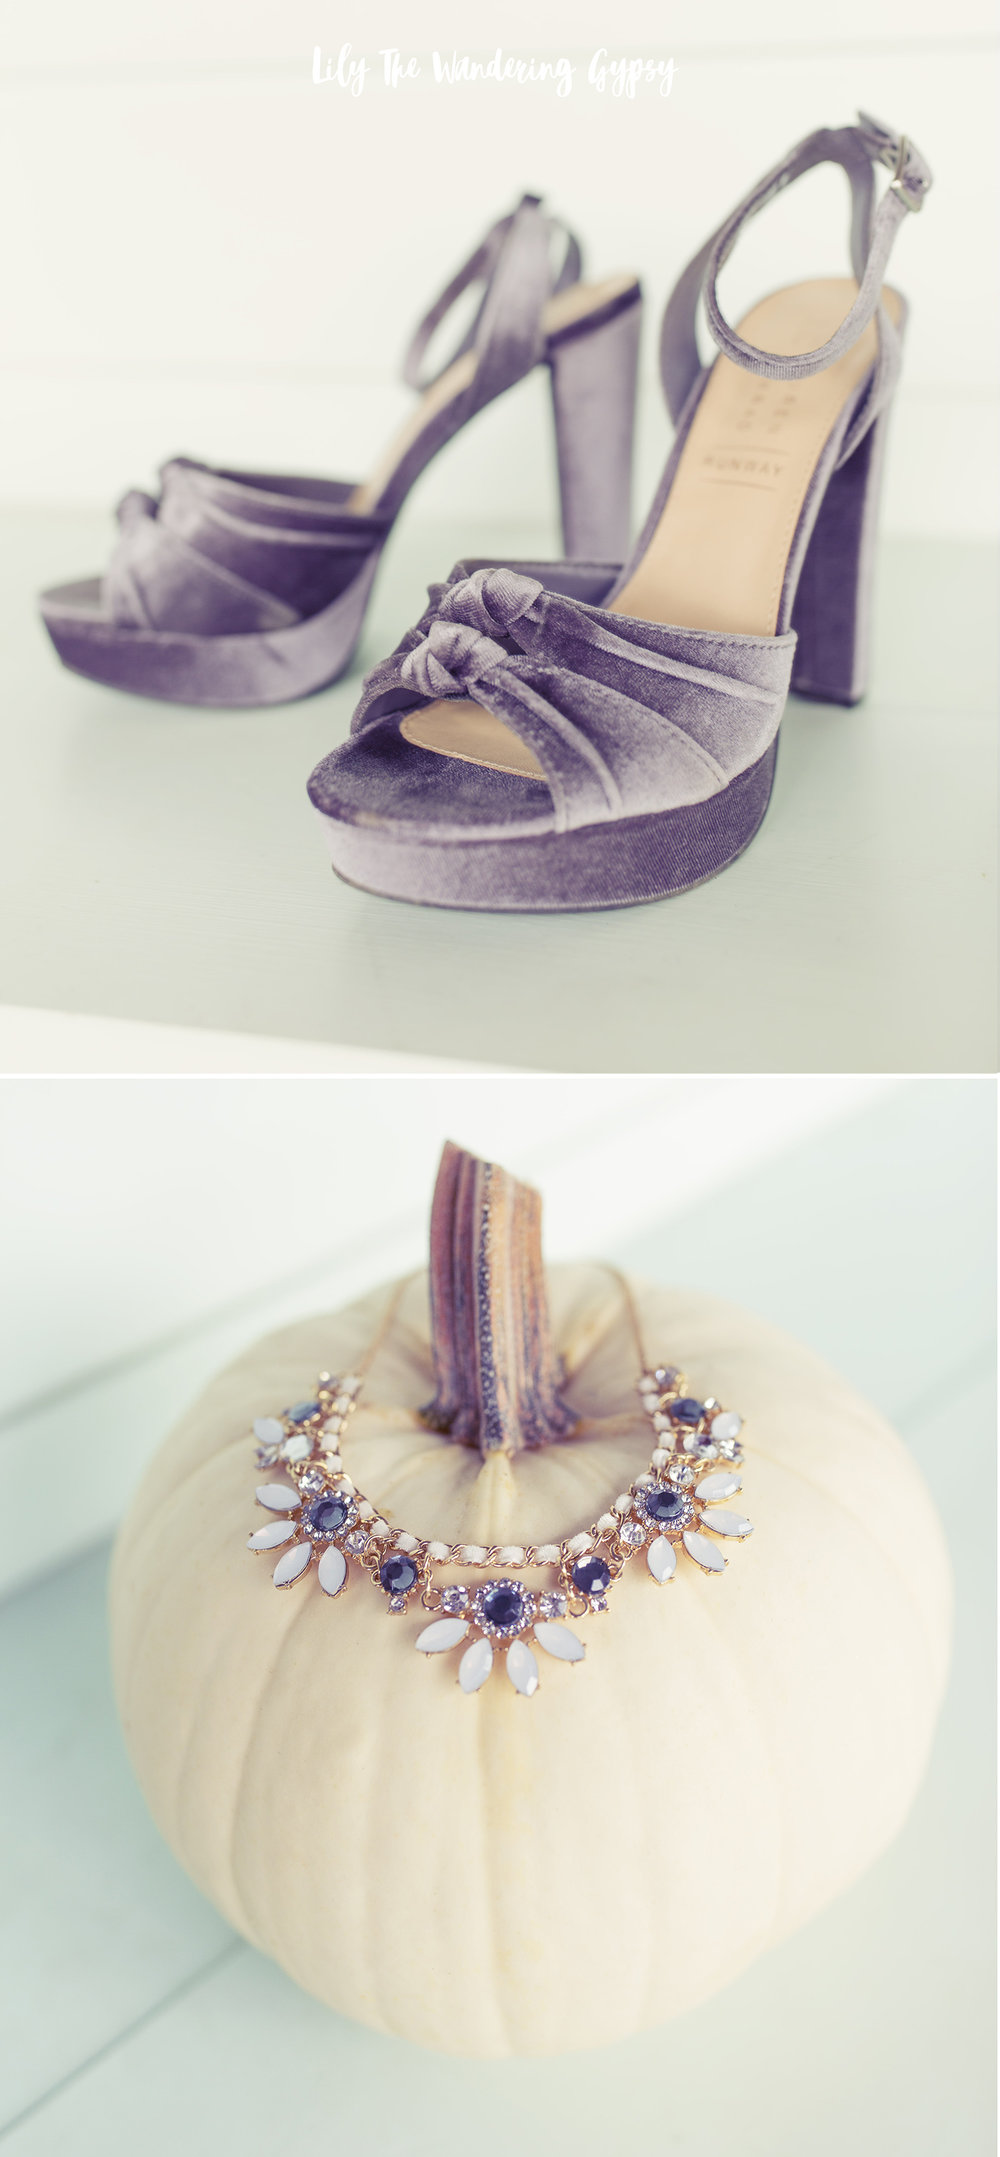 Chic, Elegant, Adorable Heels + Necklace - LOVE these so much!!